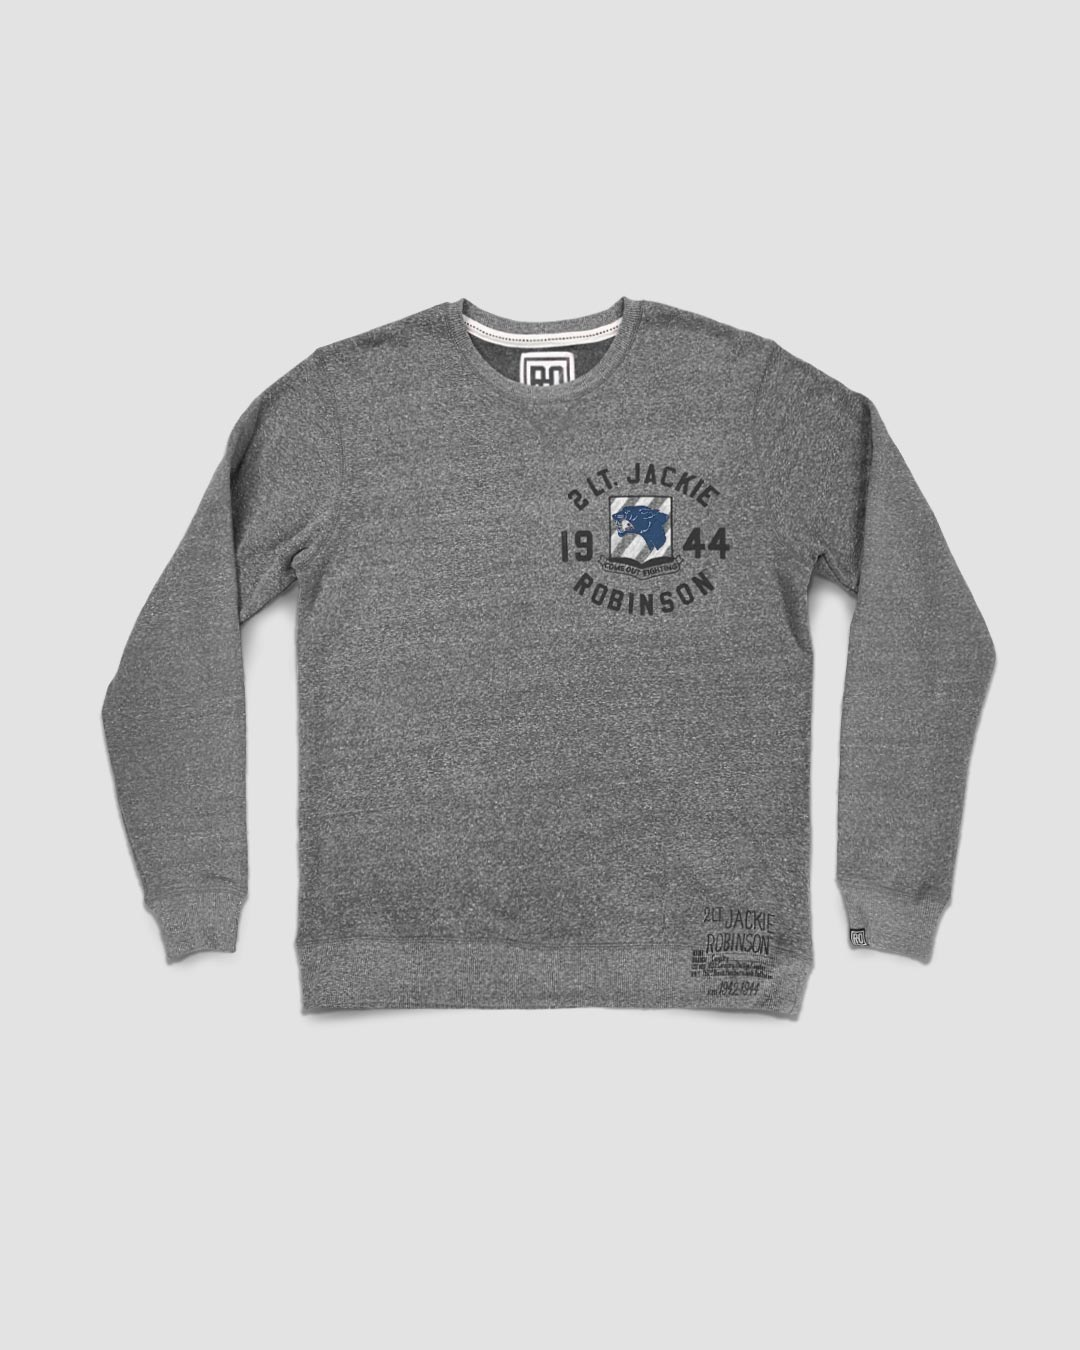 Jackie Robinson Come Out Fighting Sweatshirt - Roots of Inc dba Roots of Fight